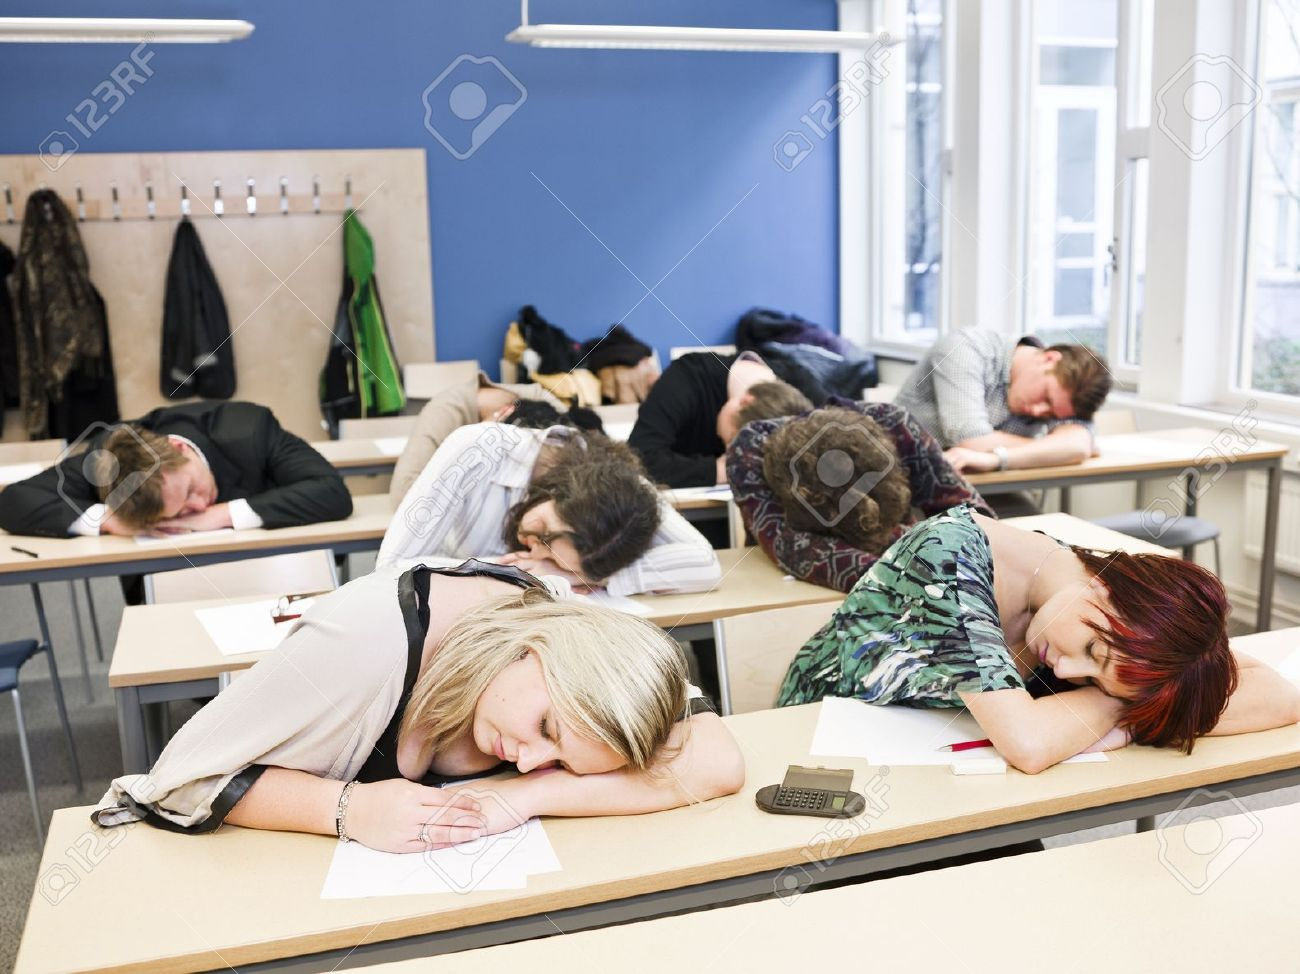 large group of sleeping students stock photo picture and royalty